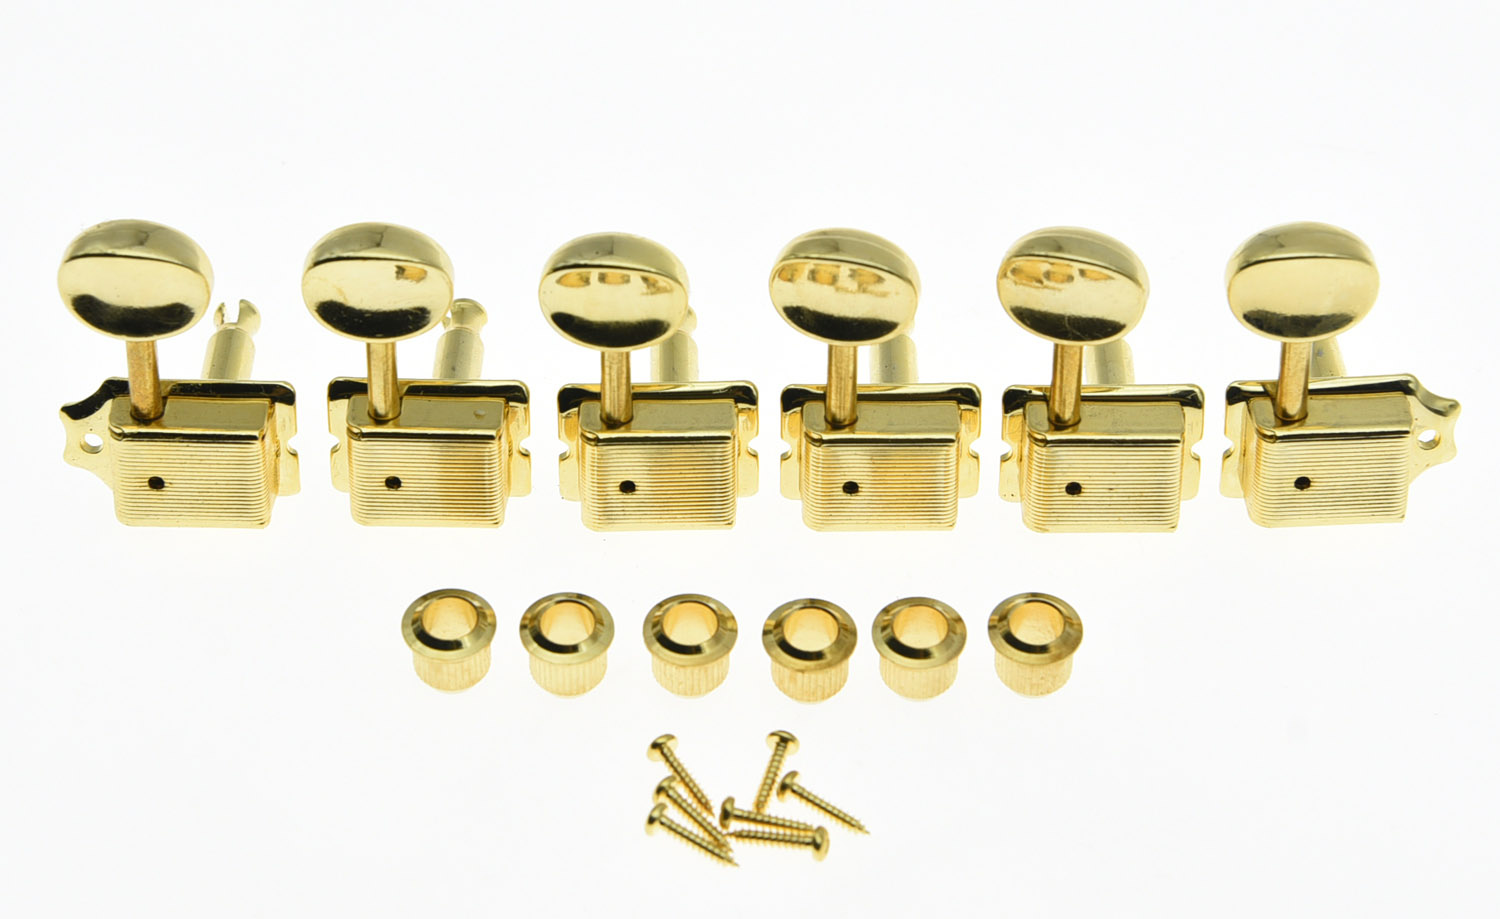 Vintage Guitar Tuning Keys Guitar Tuners Machine Heads for ST TL Gold high quality chrome split post vintage guitar tuning keys tuners machine heads for strat tele korea made